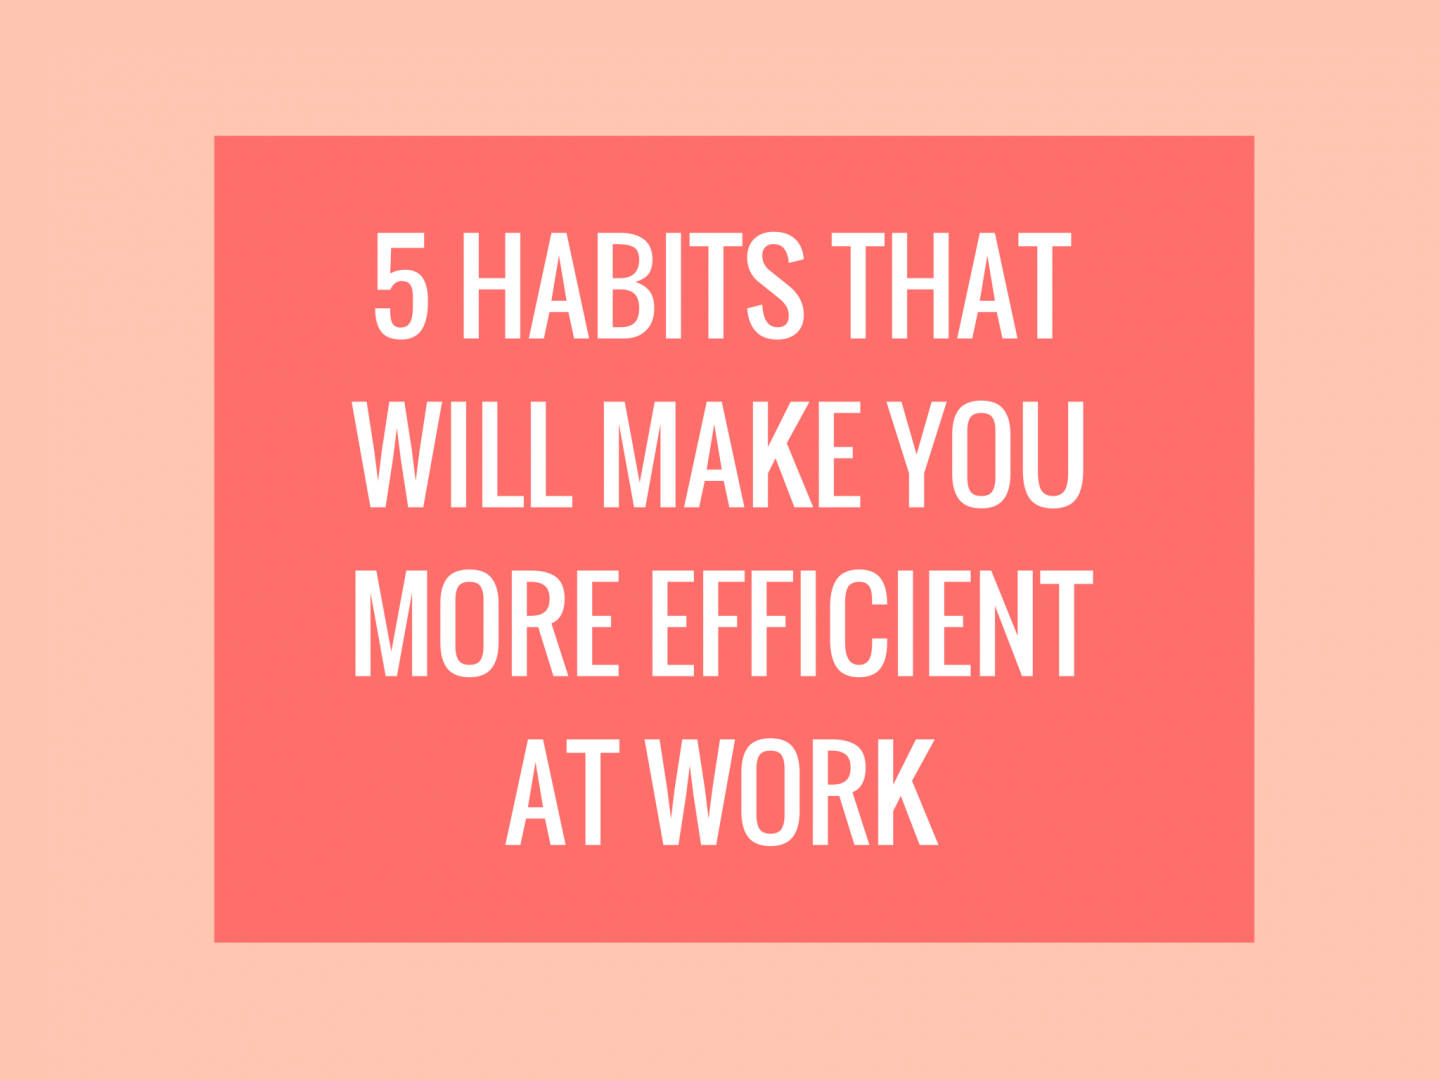 5 Habits That Will Make You More Efficient At Work